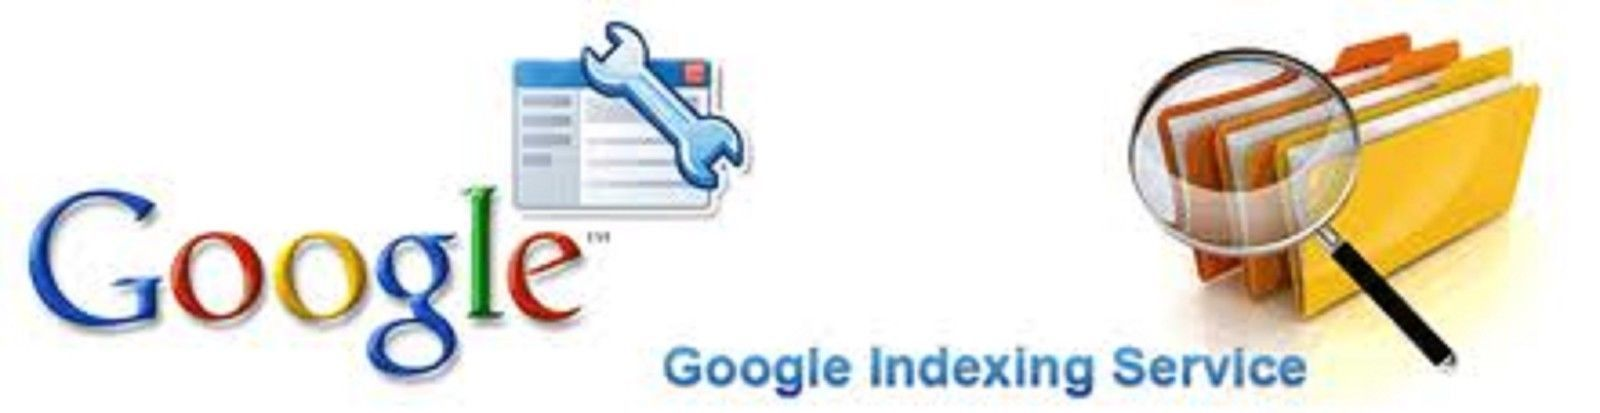 Get your website Indexed In Google Within 8 Days or your money back.